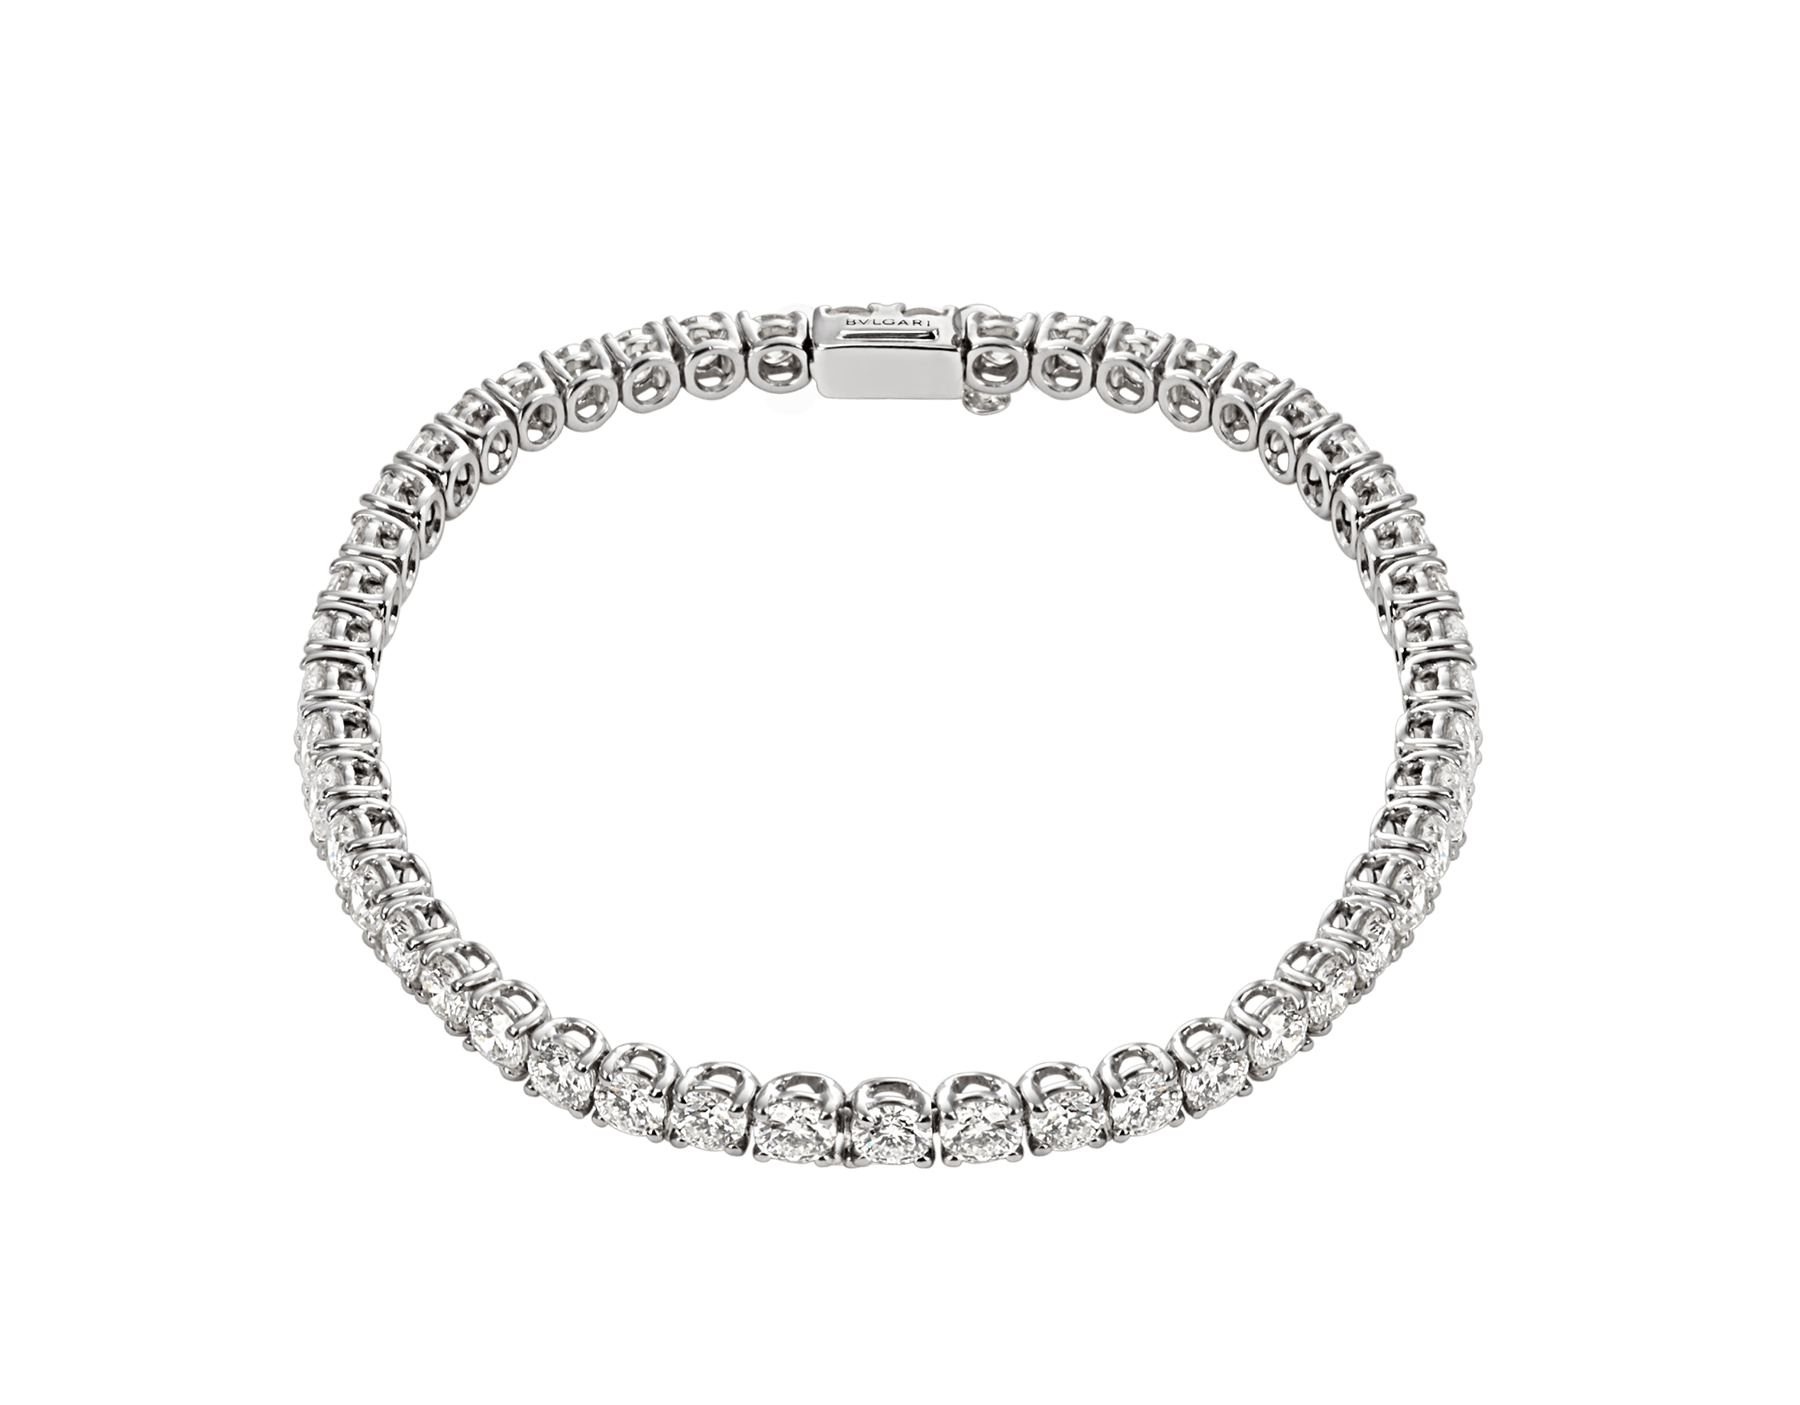 Griffe 18 kt white gold tennis bracelet with round brilliant cut diamonds BR852870 image 1